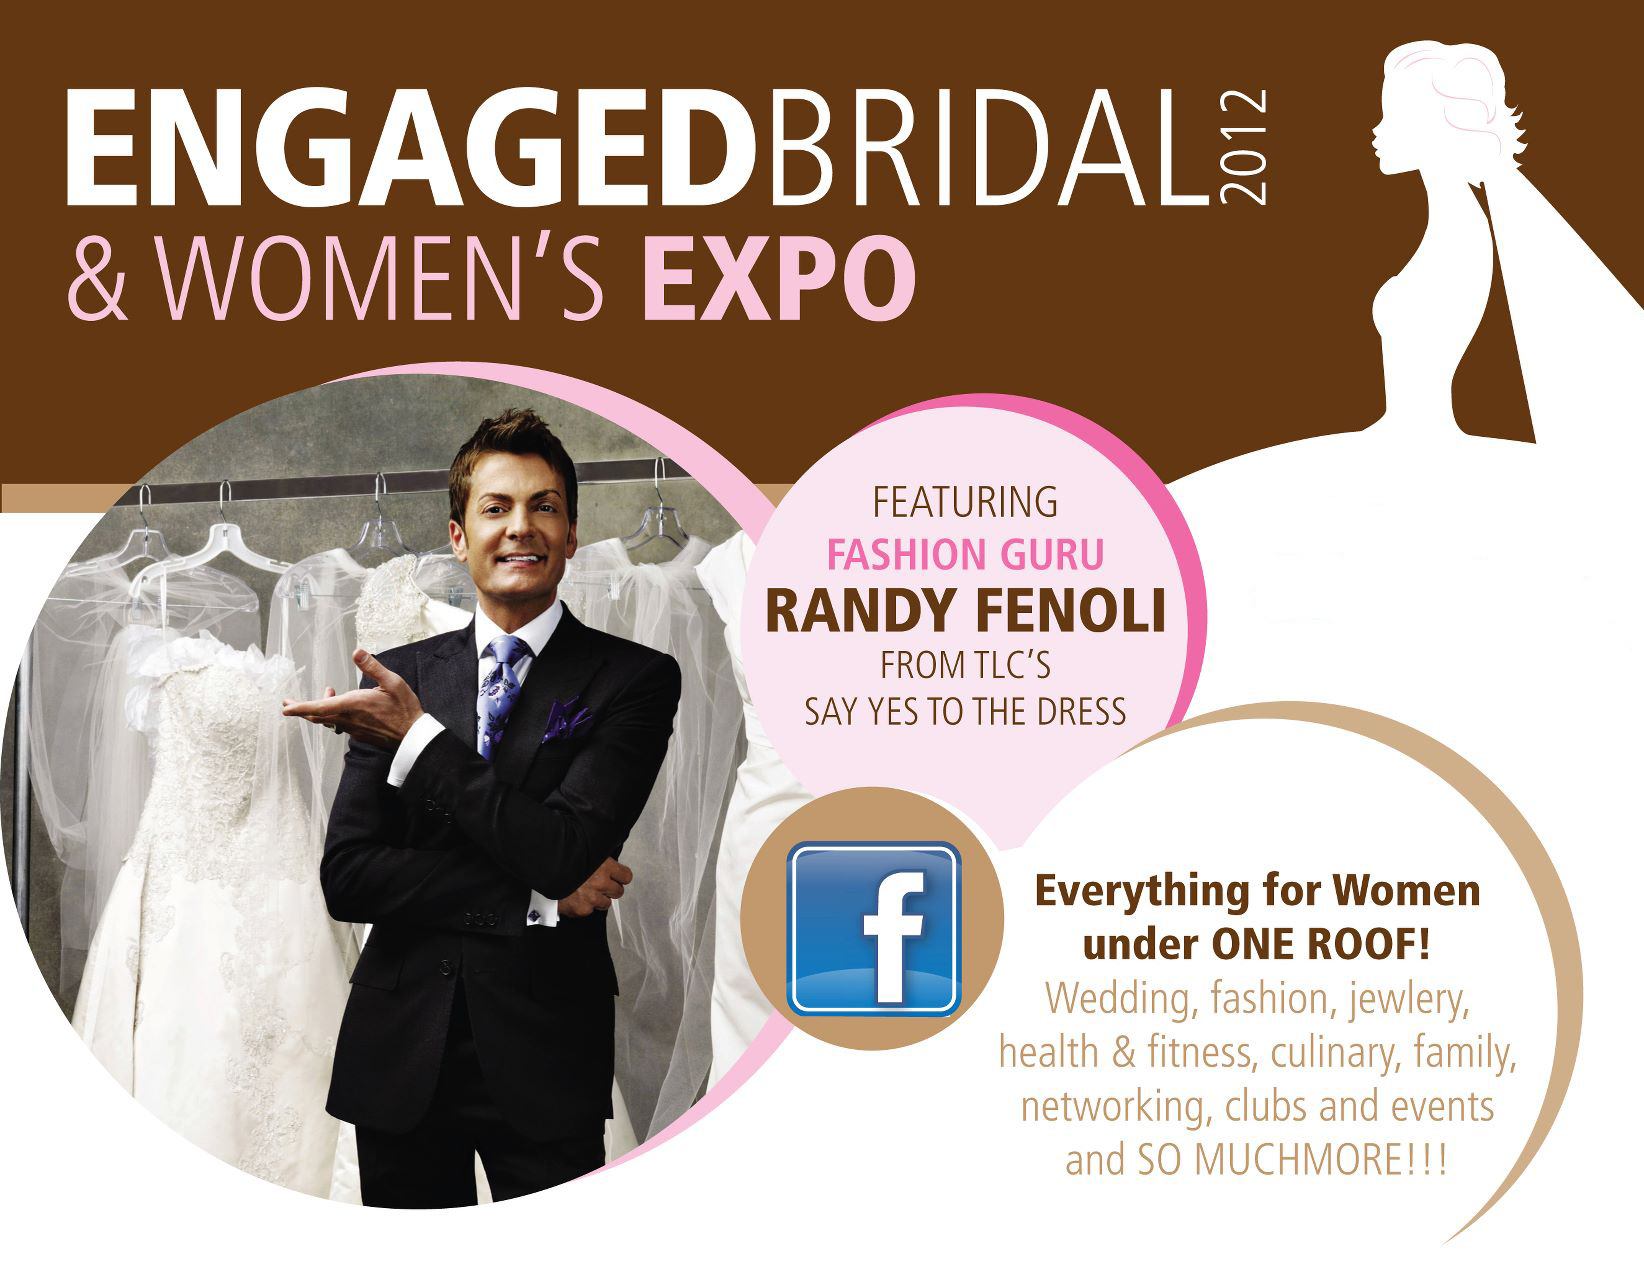 Engaged Bridal 2012 & Womens Expo Belleville